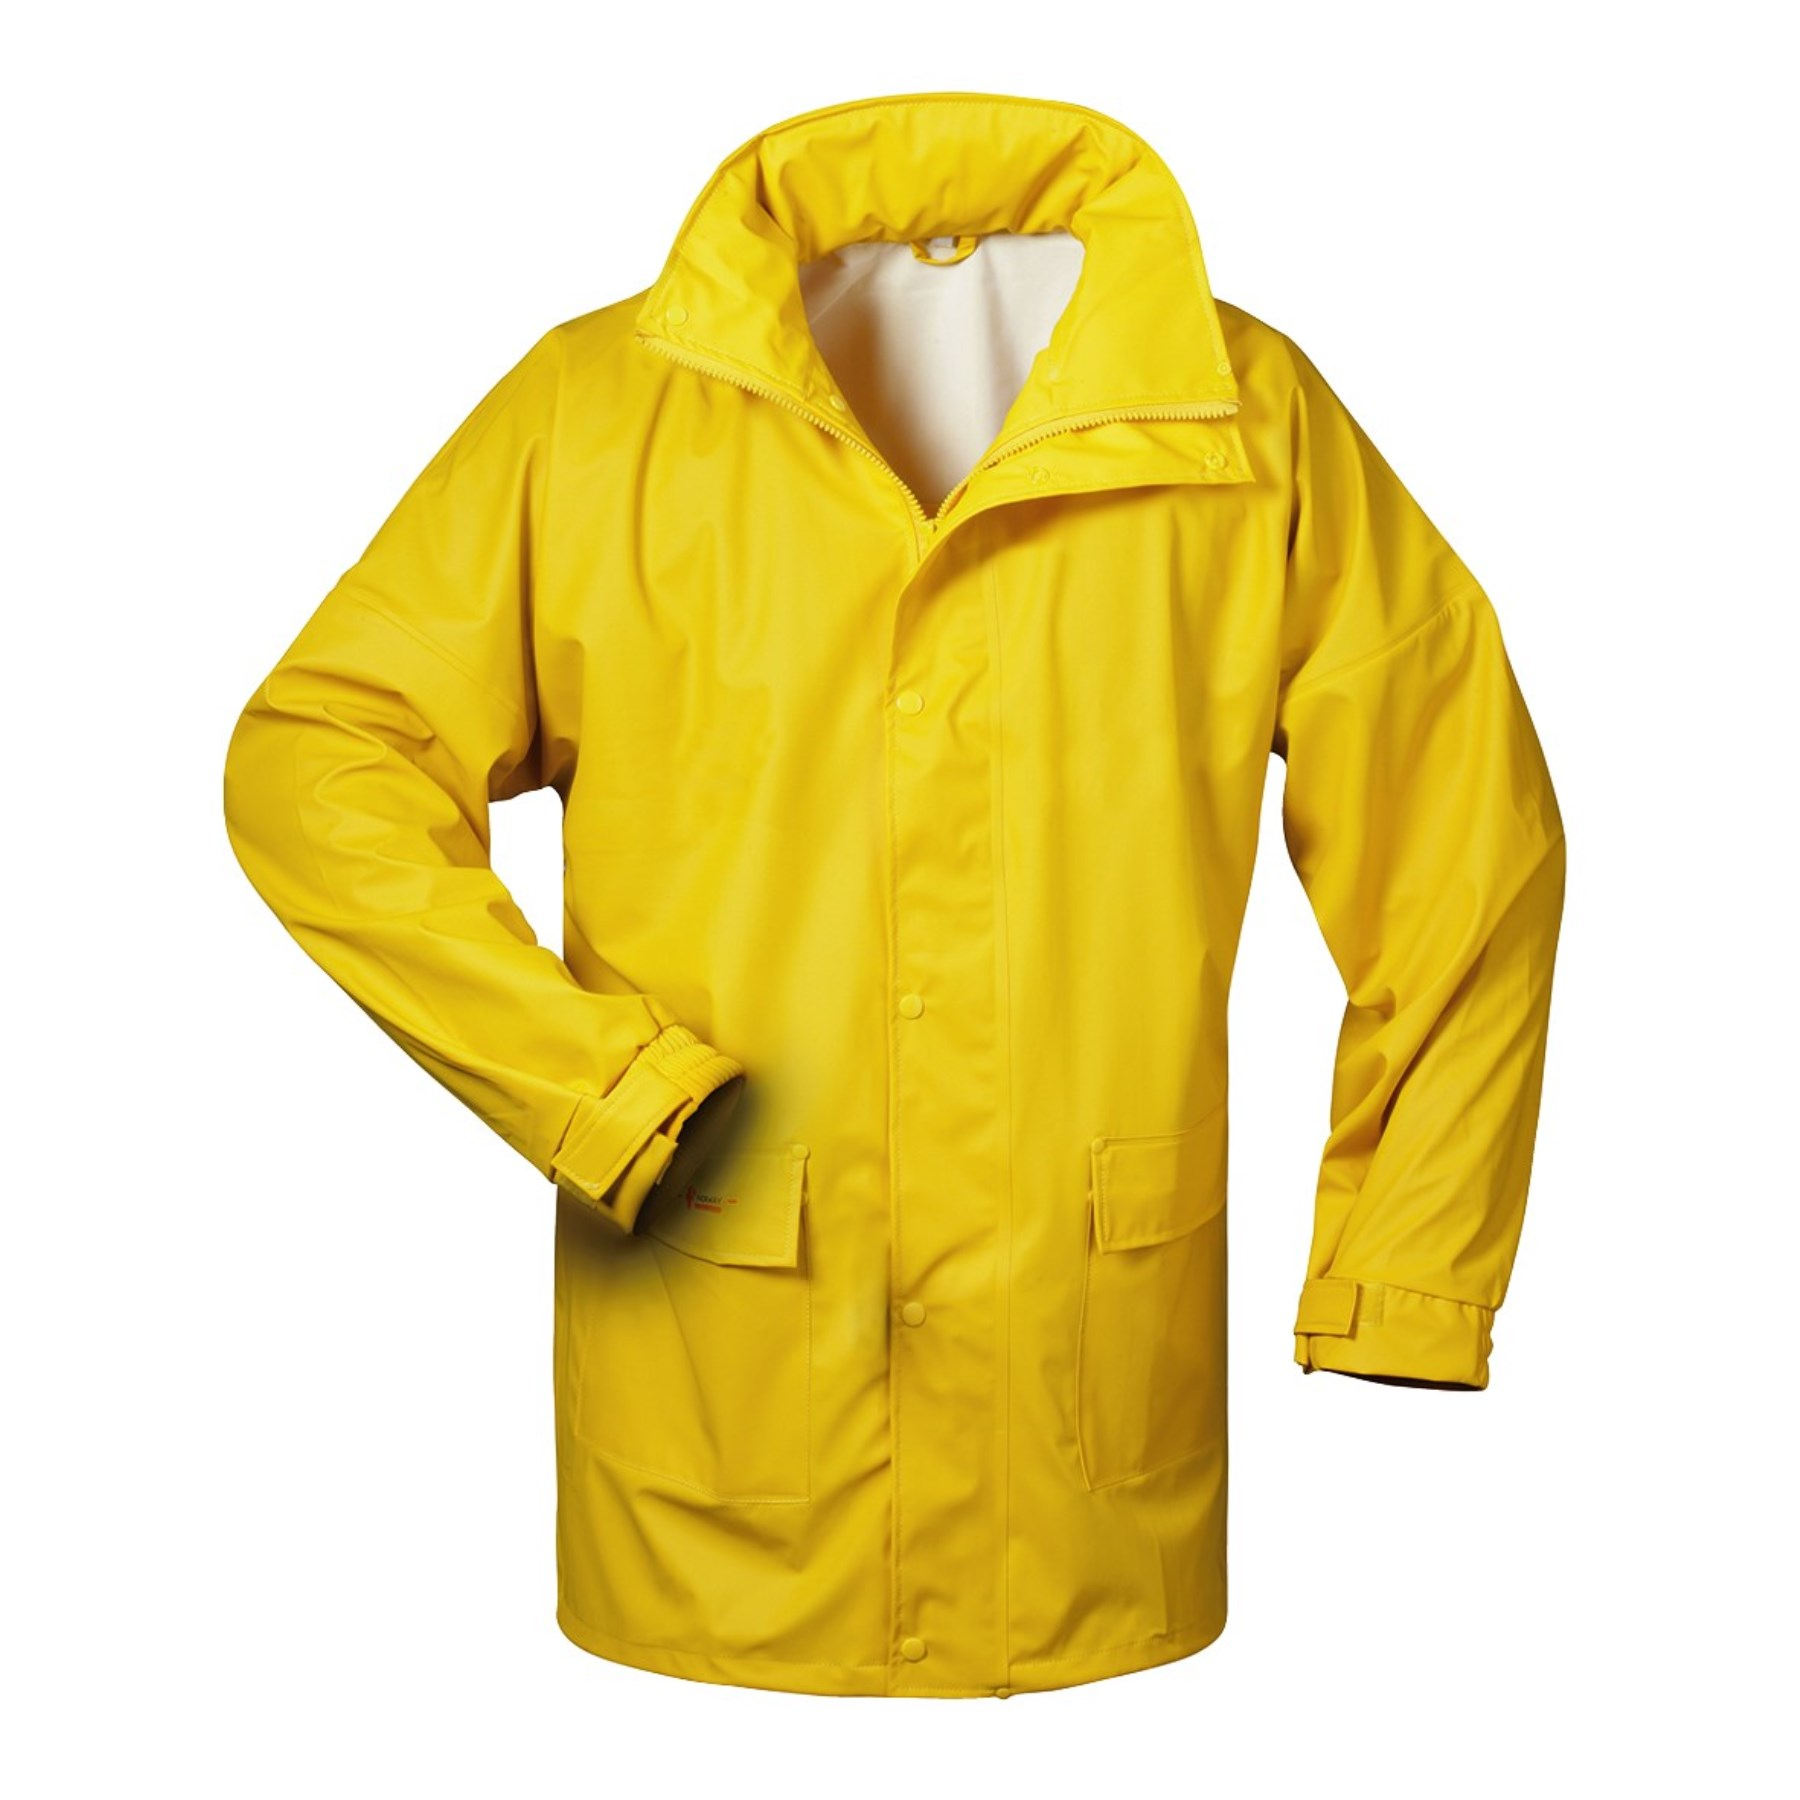 1223588 - Regenjacke PU-Stretch